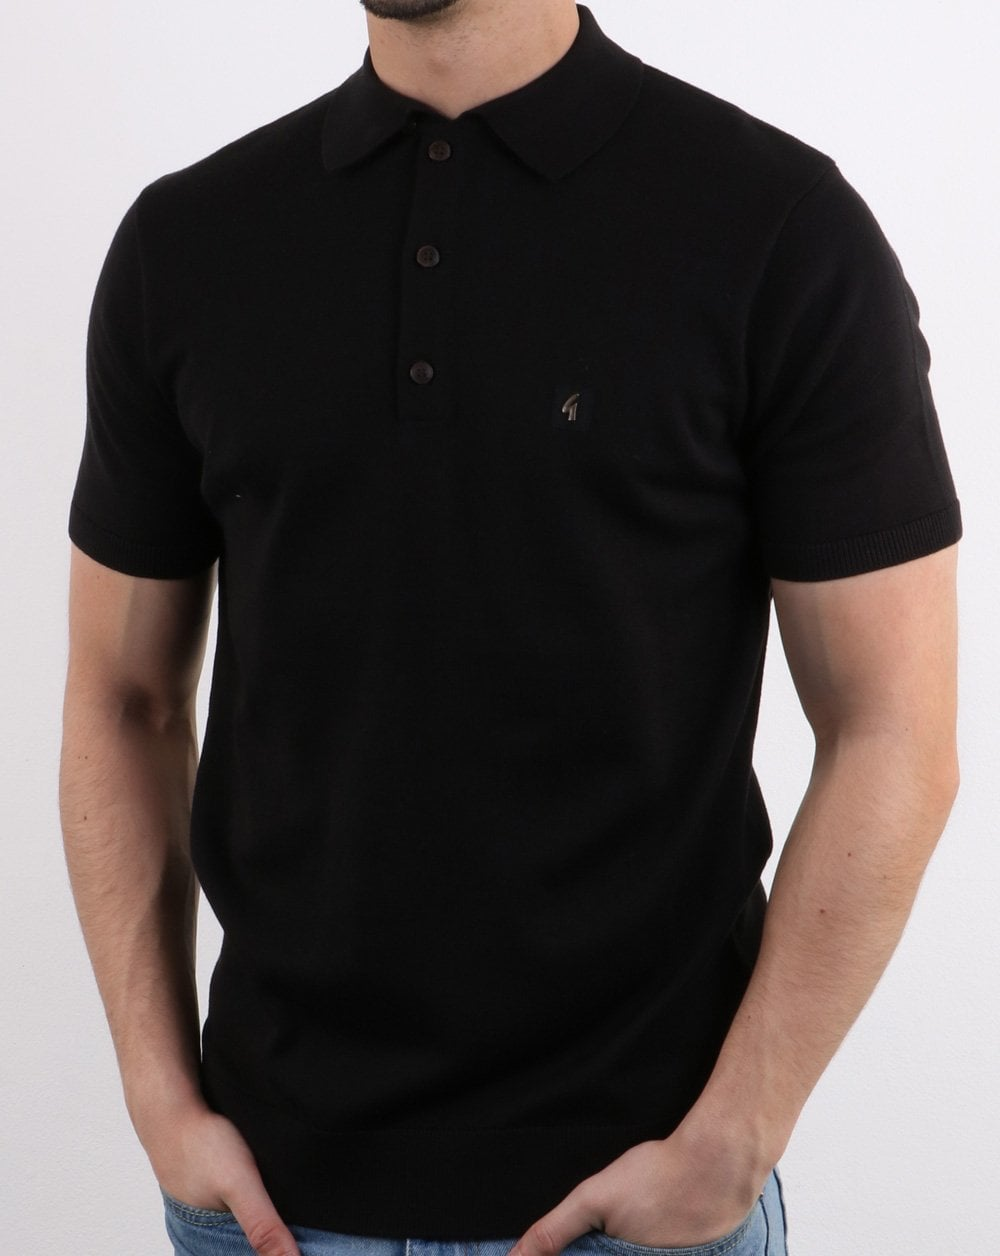 f98343d48 Gabicci Vintage Knitted Logo Polo Shirt in Black | 80s Casual Classics